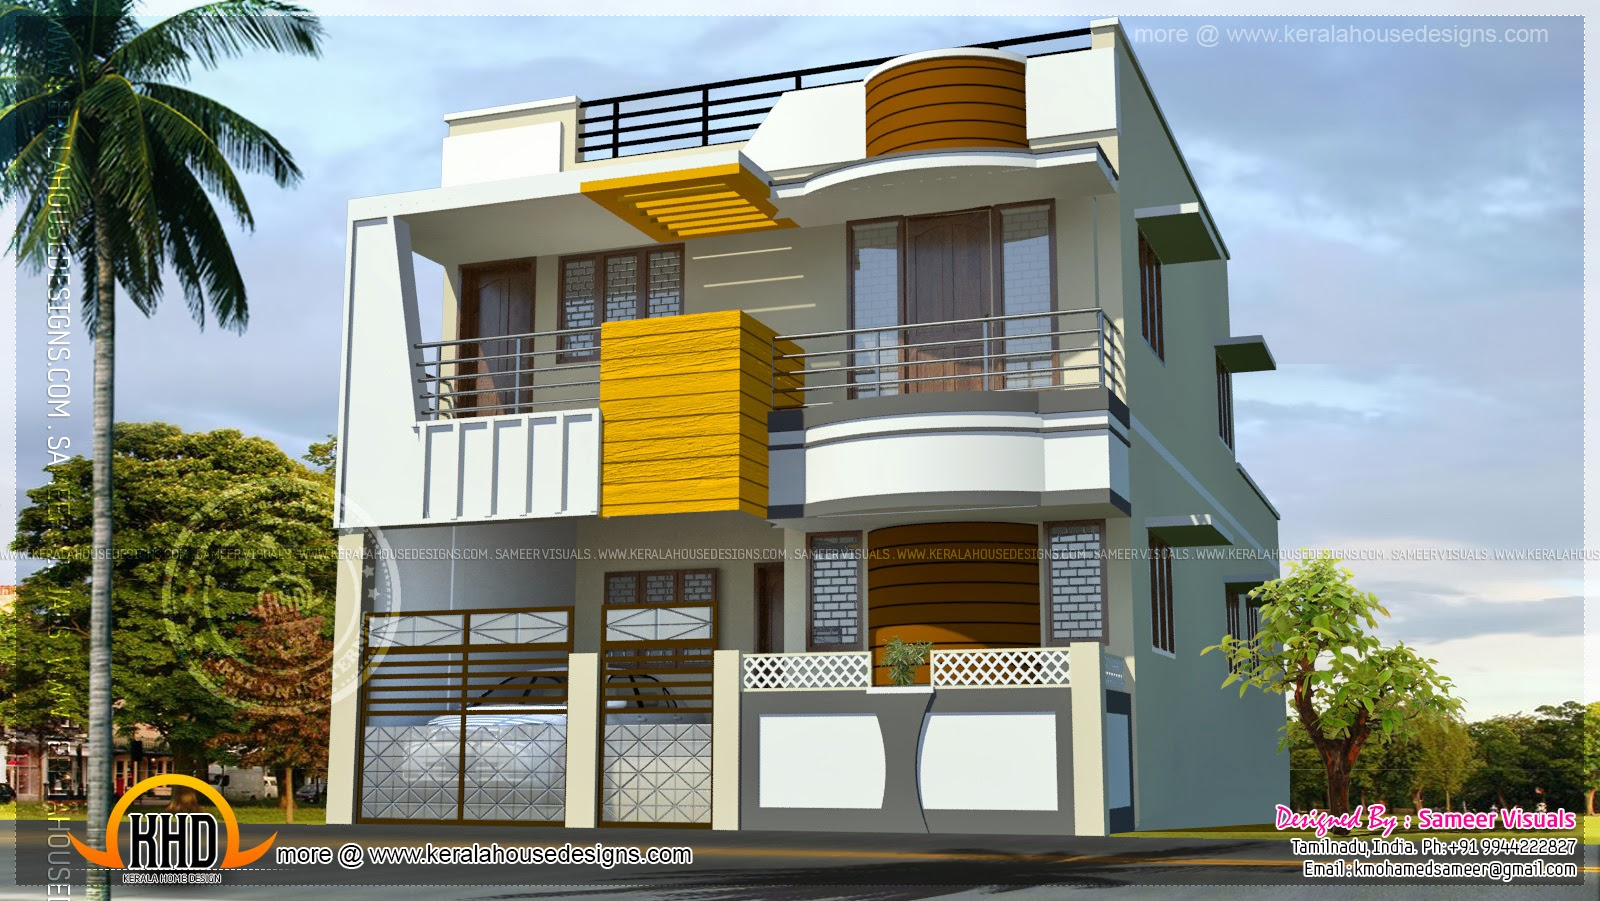 January 2014 kerala home design and floor plans Simple house designs indian style